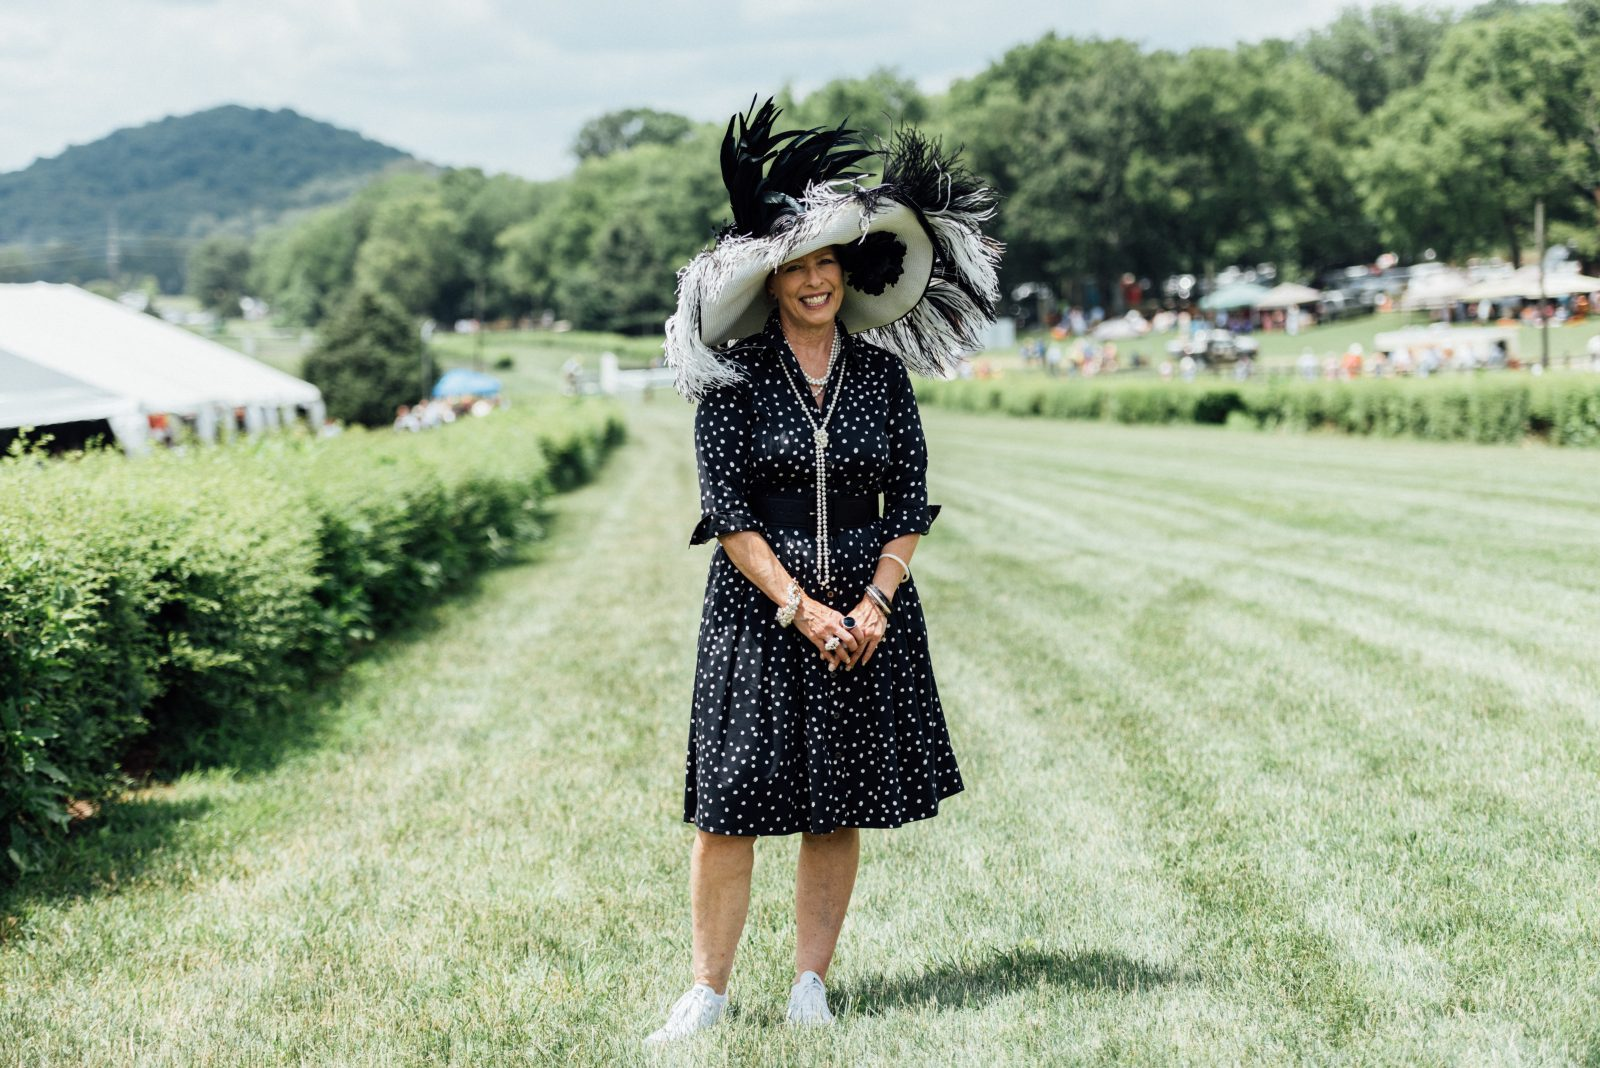 Diane Crooke in a black and white spotted dress with a black and white feathered hat